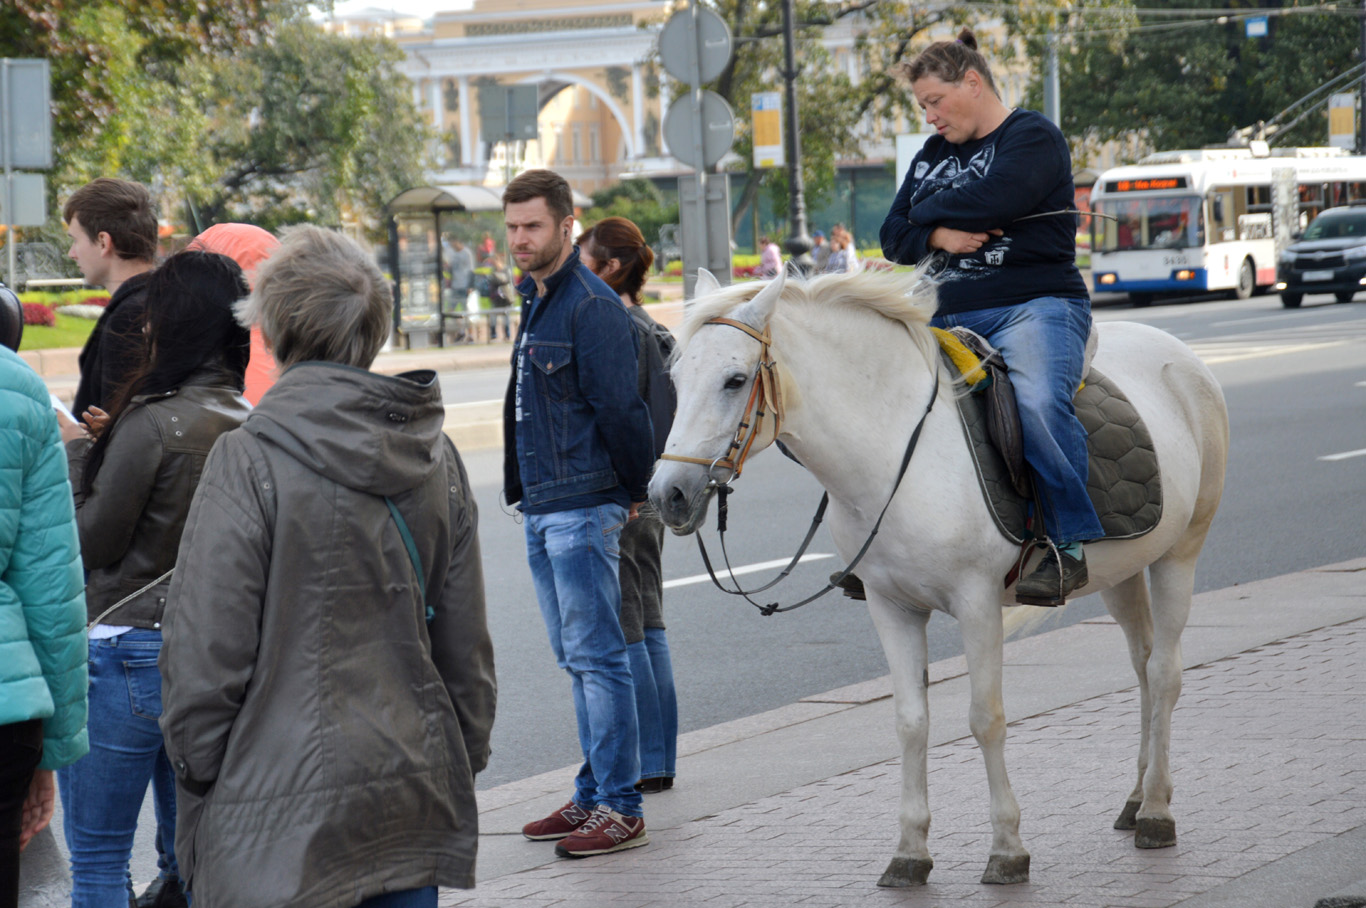 On a horse in the city center - in Russia everything is possible